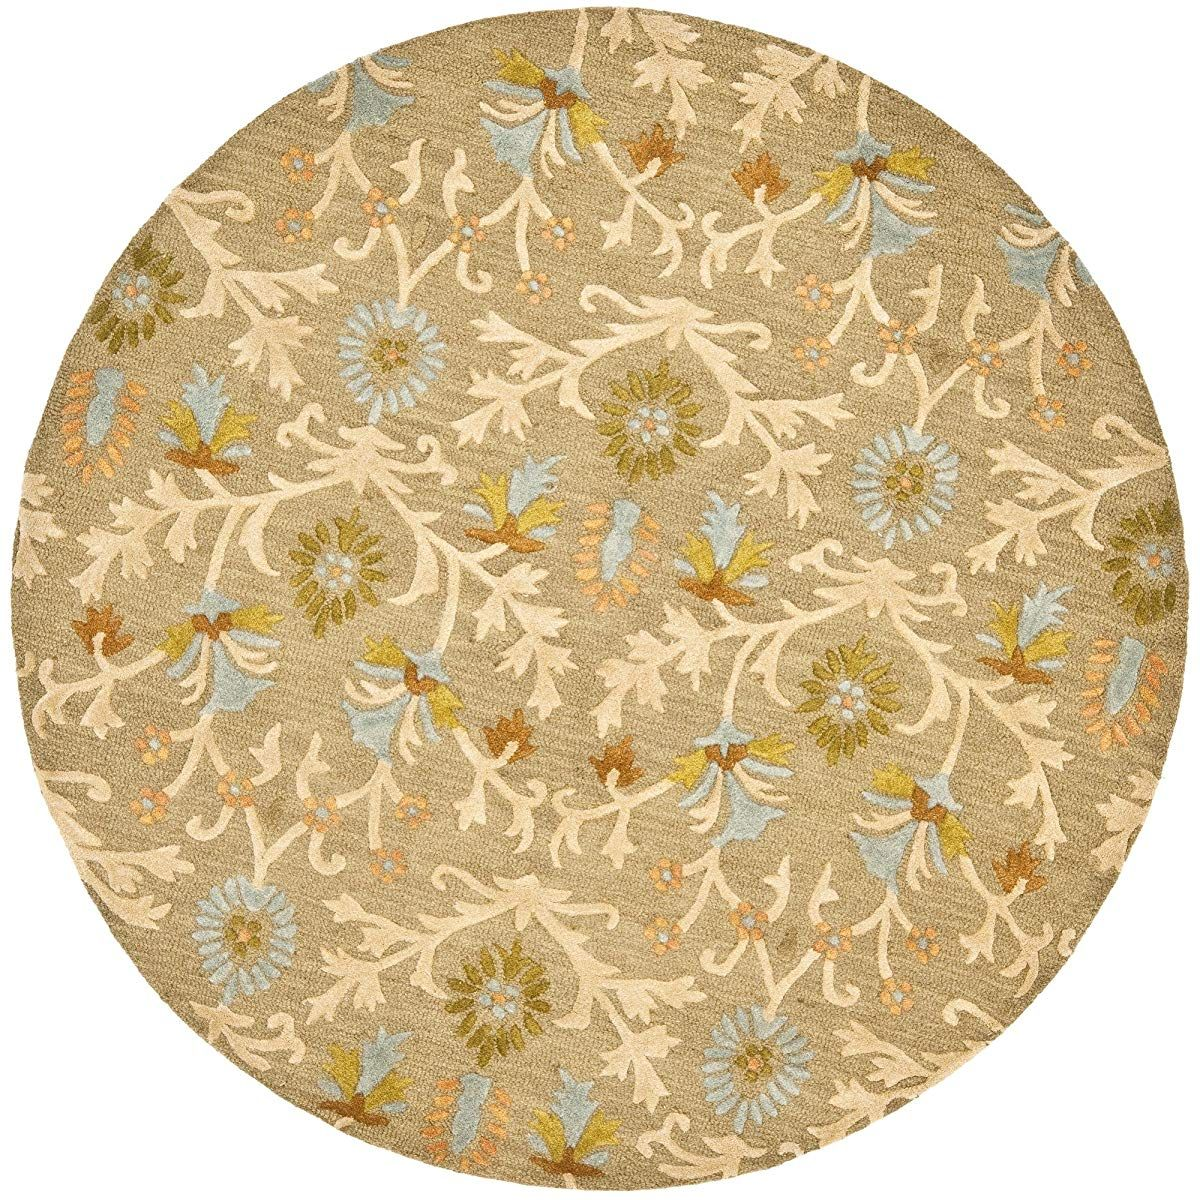 Handcrafted Moroccan Geometric Moss And Multi Premium Wool Round Area Rug Round Area Rugs Area Rugs Wool Area Rugs